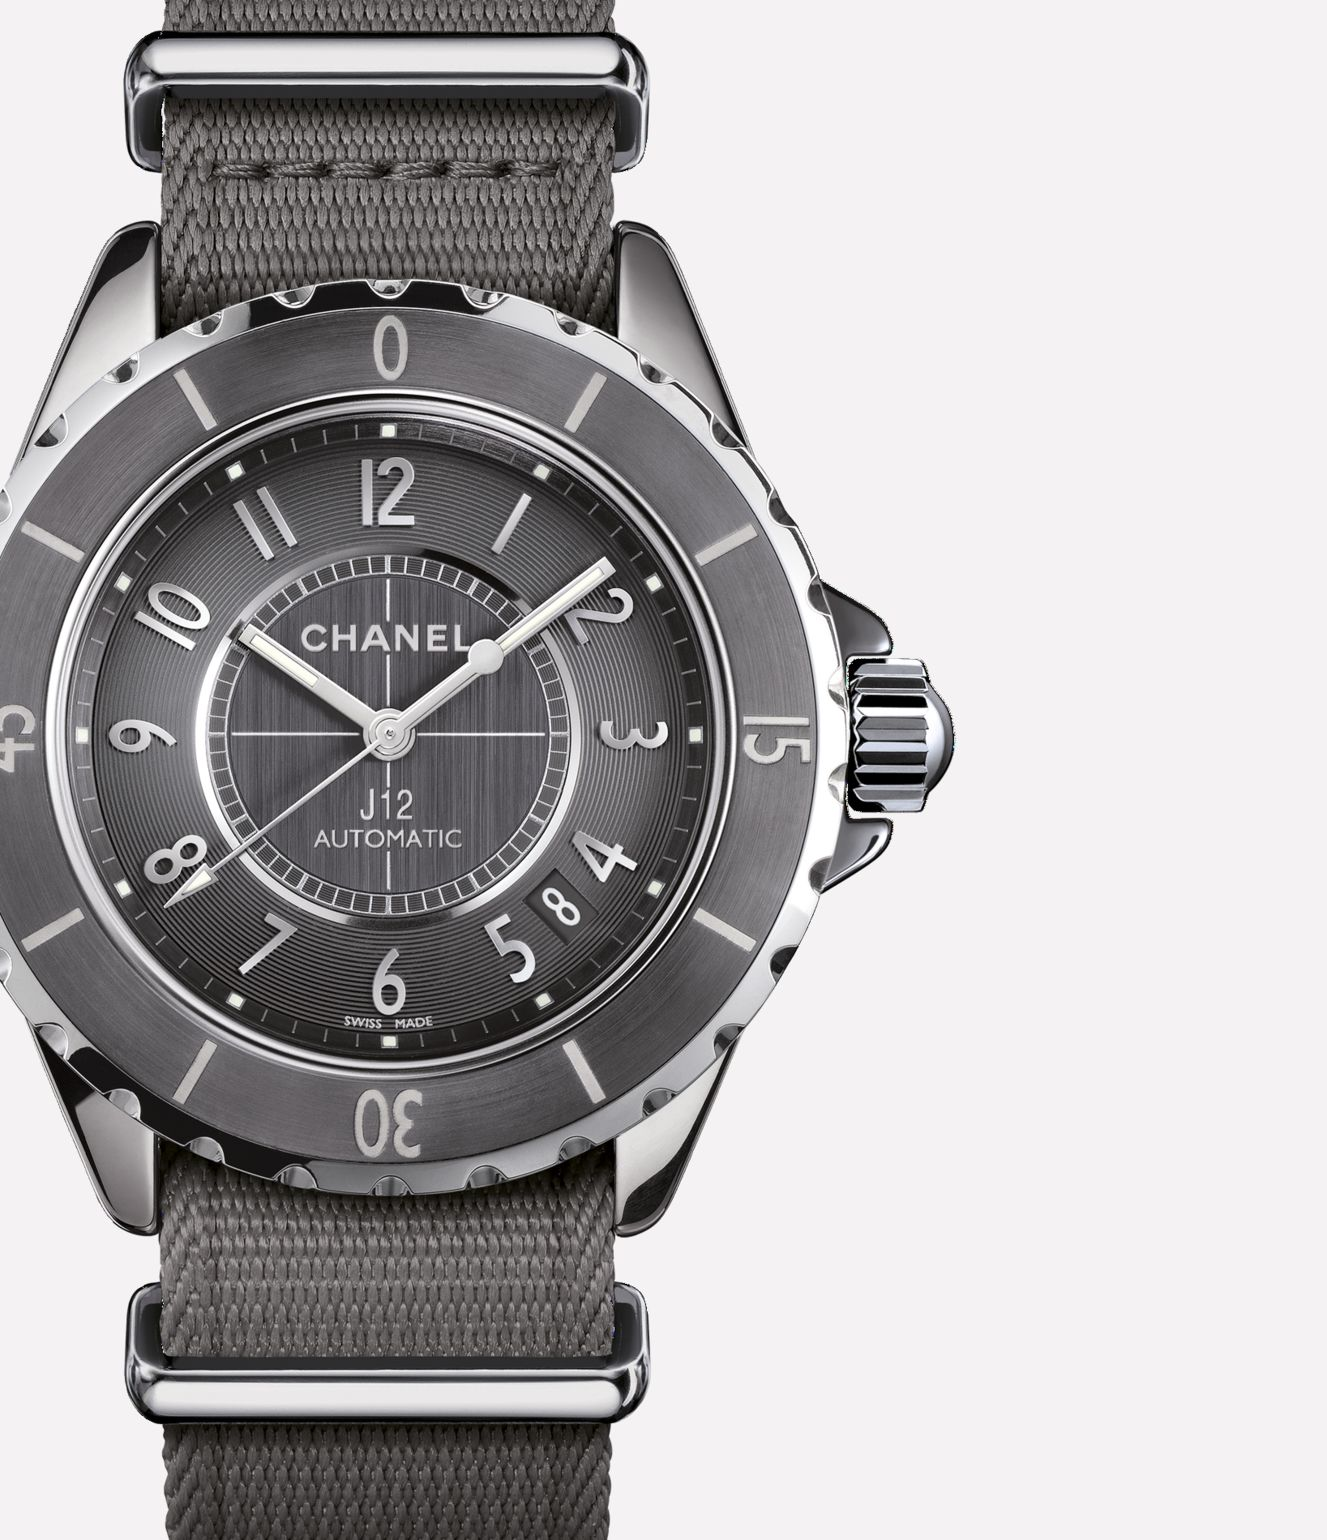 J12-G10 Titanium ceramic and steel, grey alligator and grey nylon straps